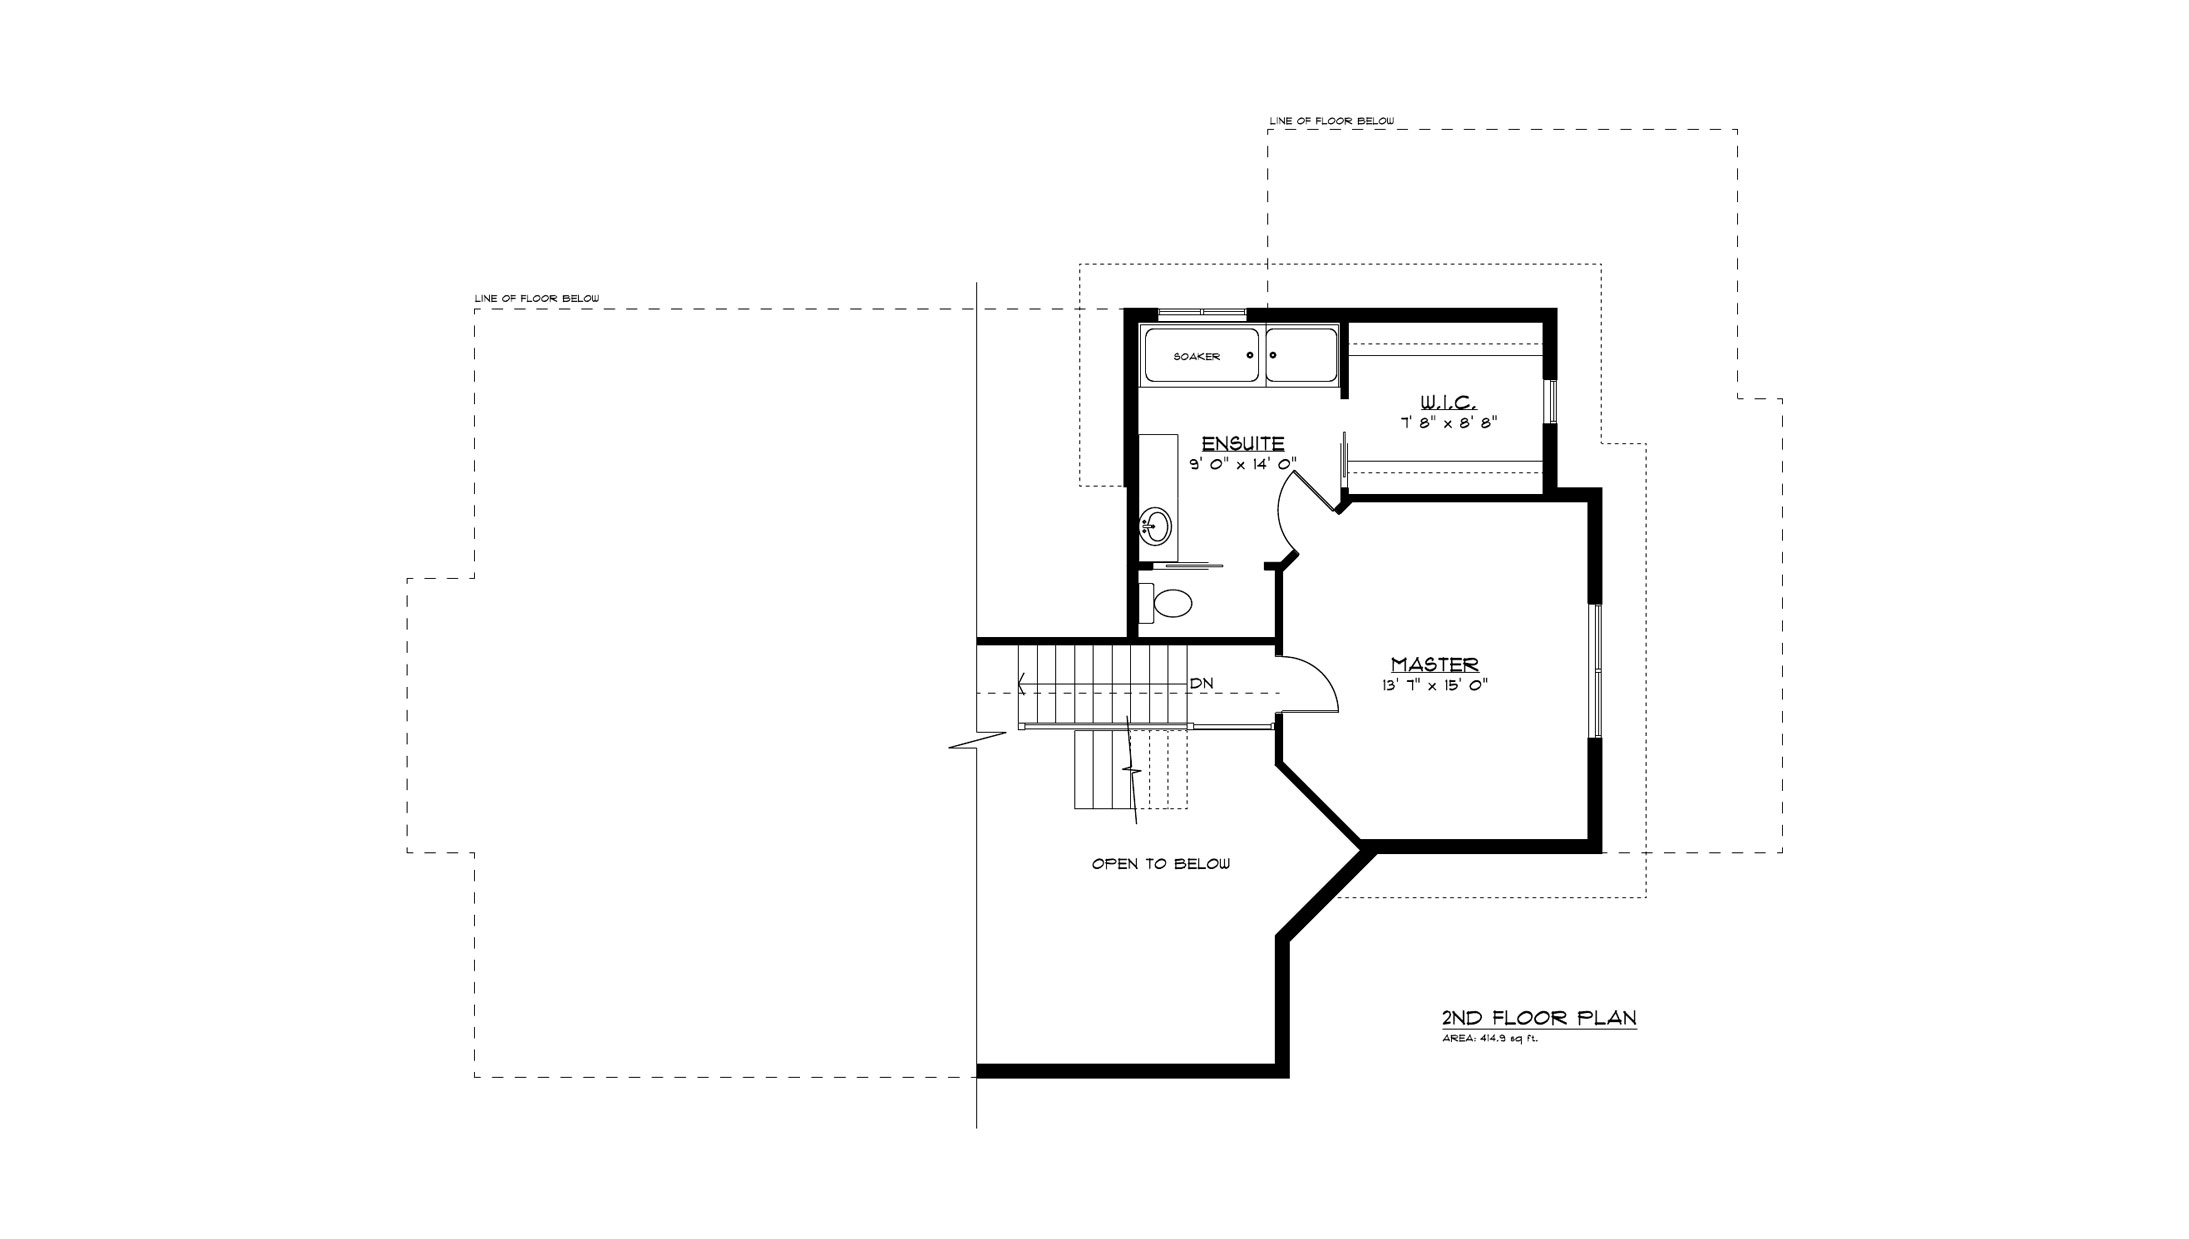 Wiring A Vaulted Ceiling Free Diagram Images Bedroom For